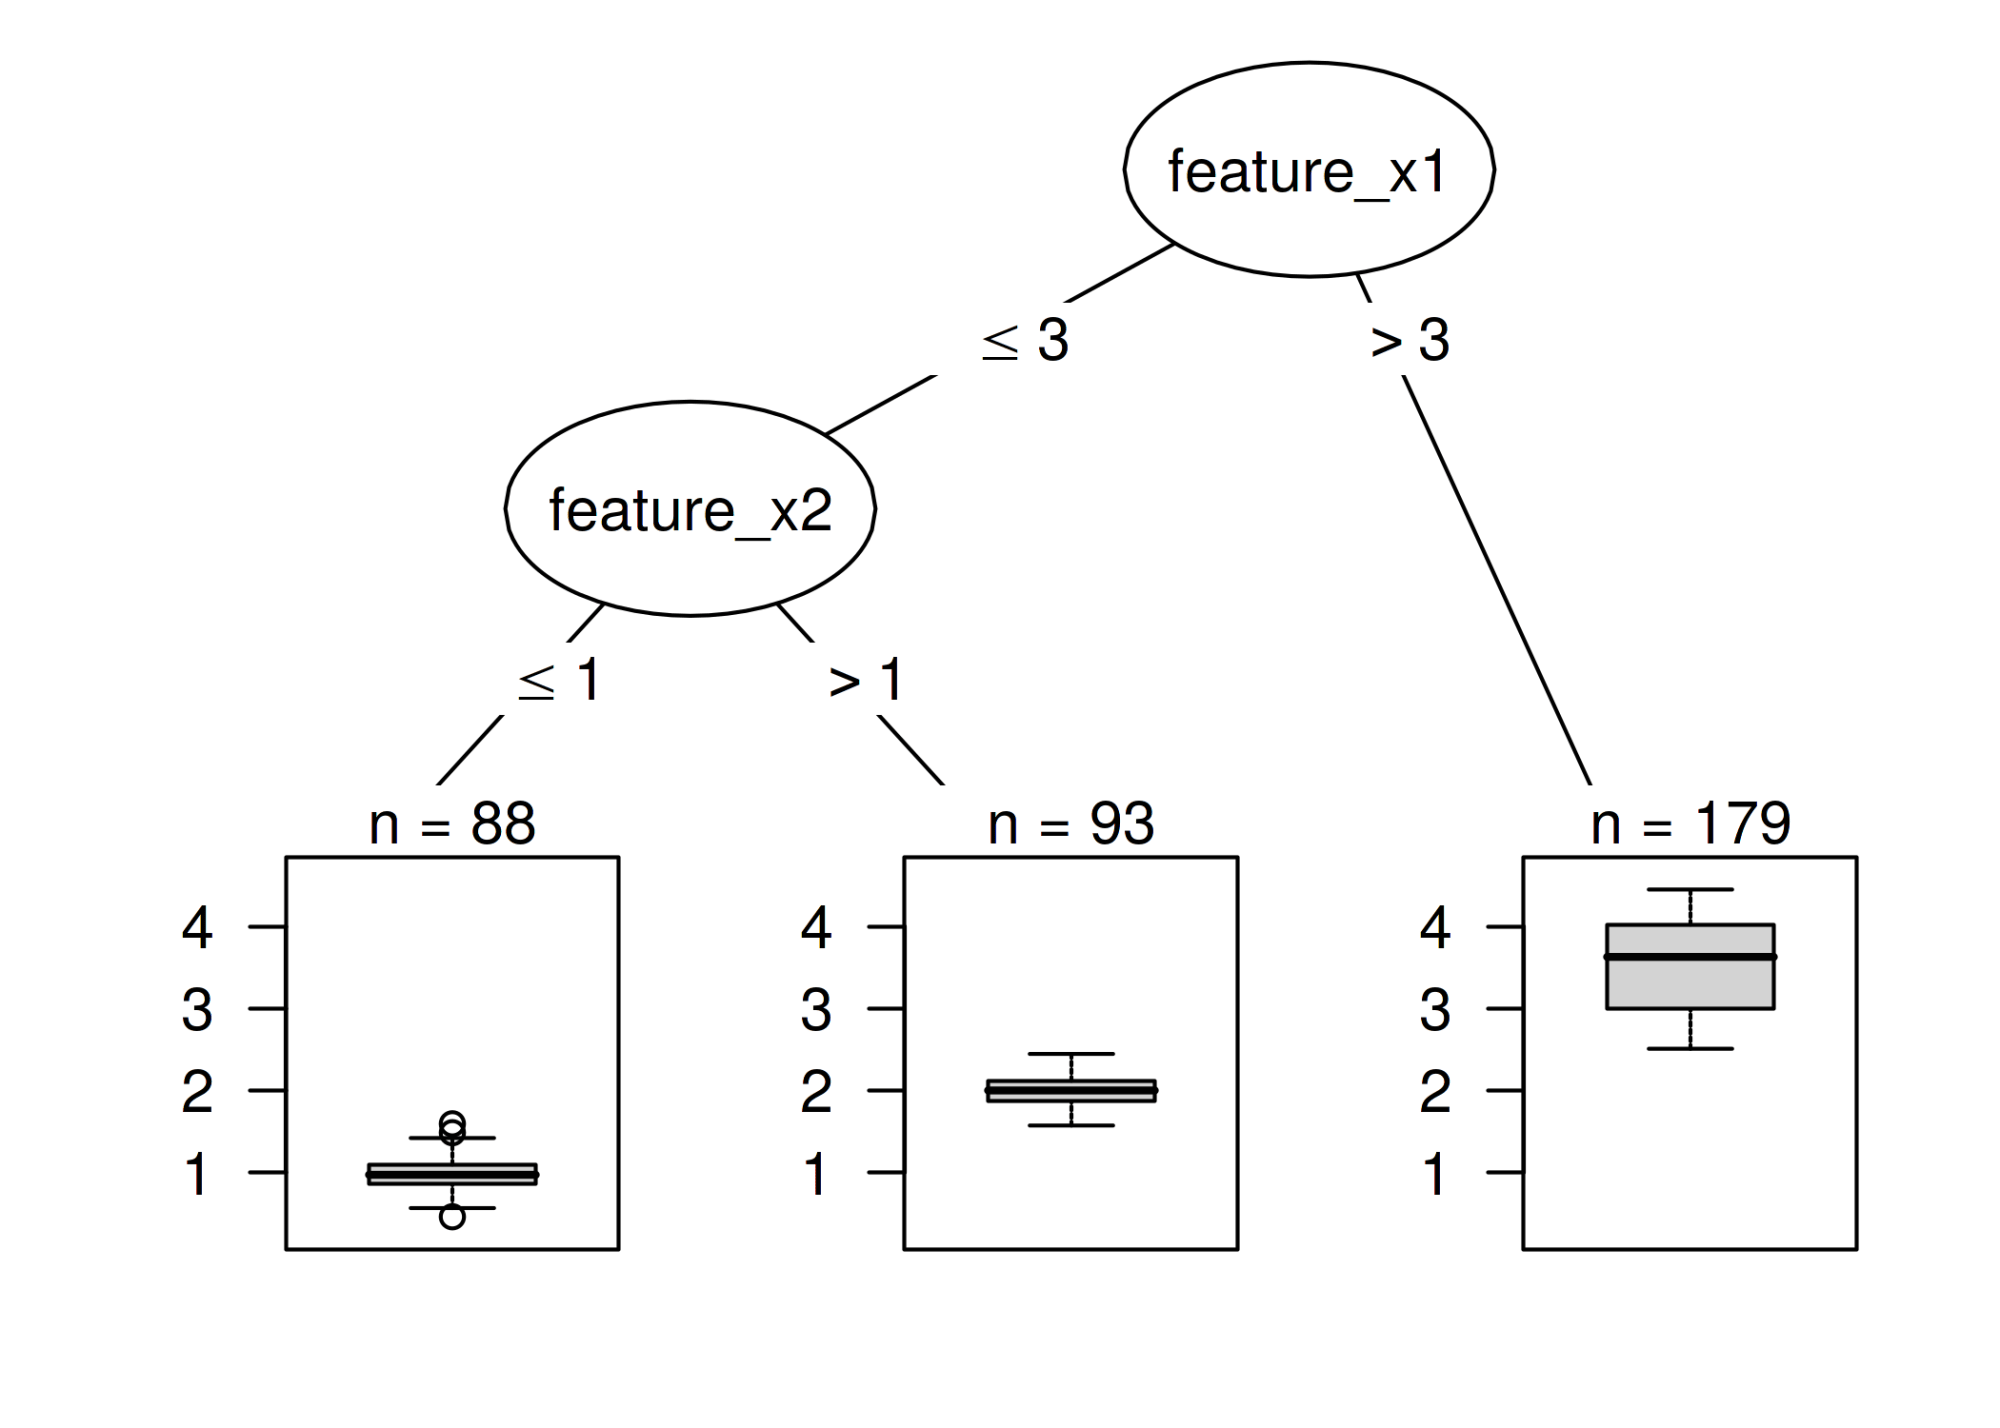 hight resolution of decision tree with artificial data instances with a value greater than 3 for feature x1